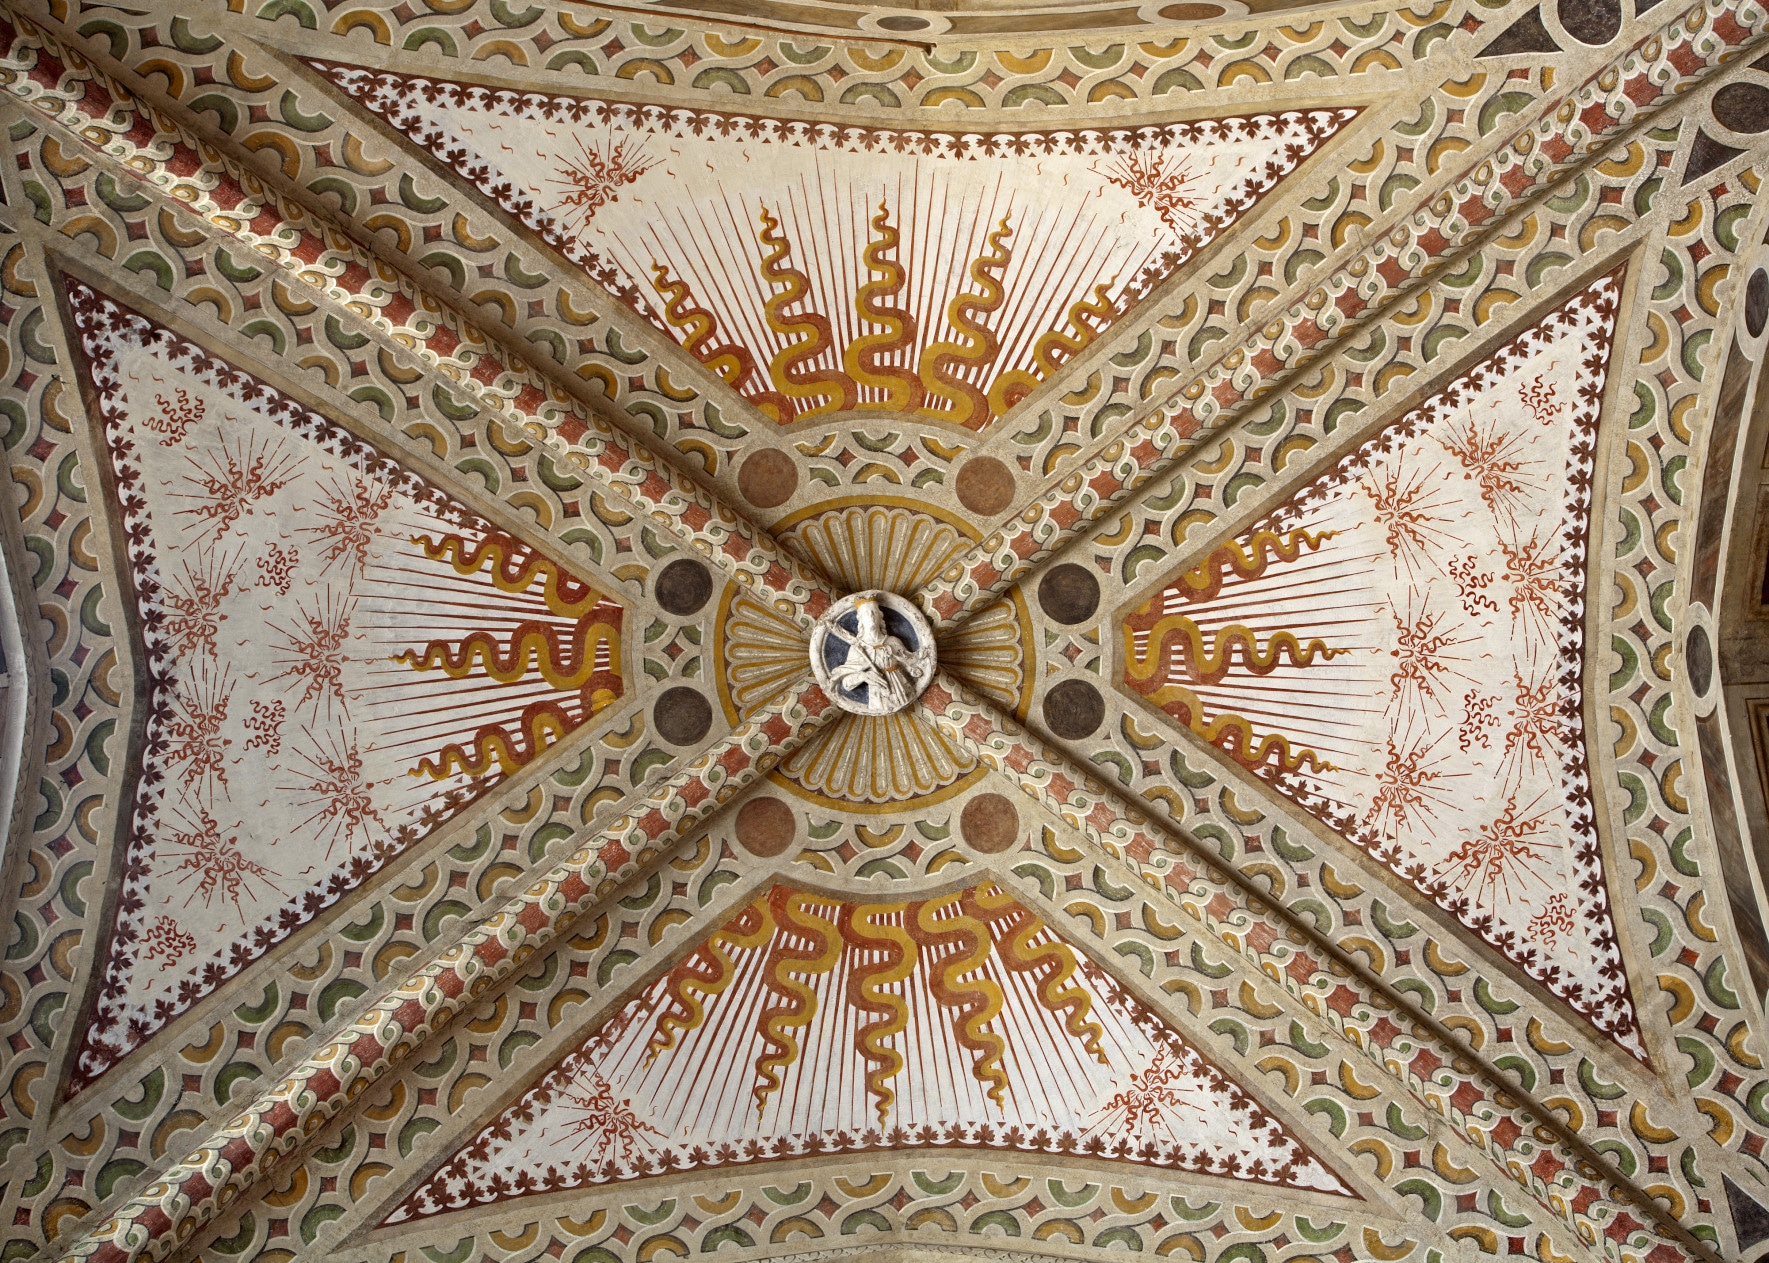 Milan - detail of roof from church Santa Maria delle Grazie